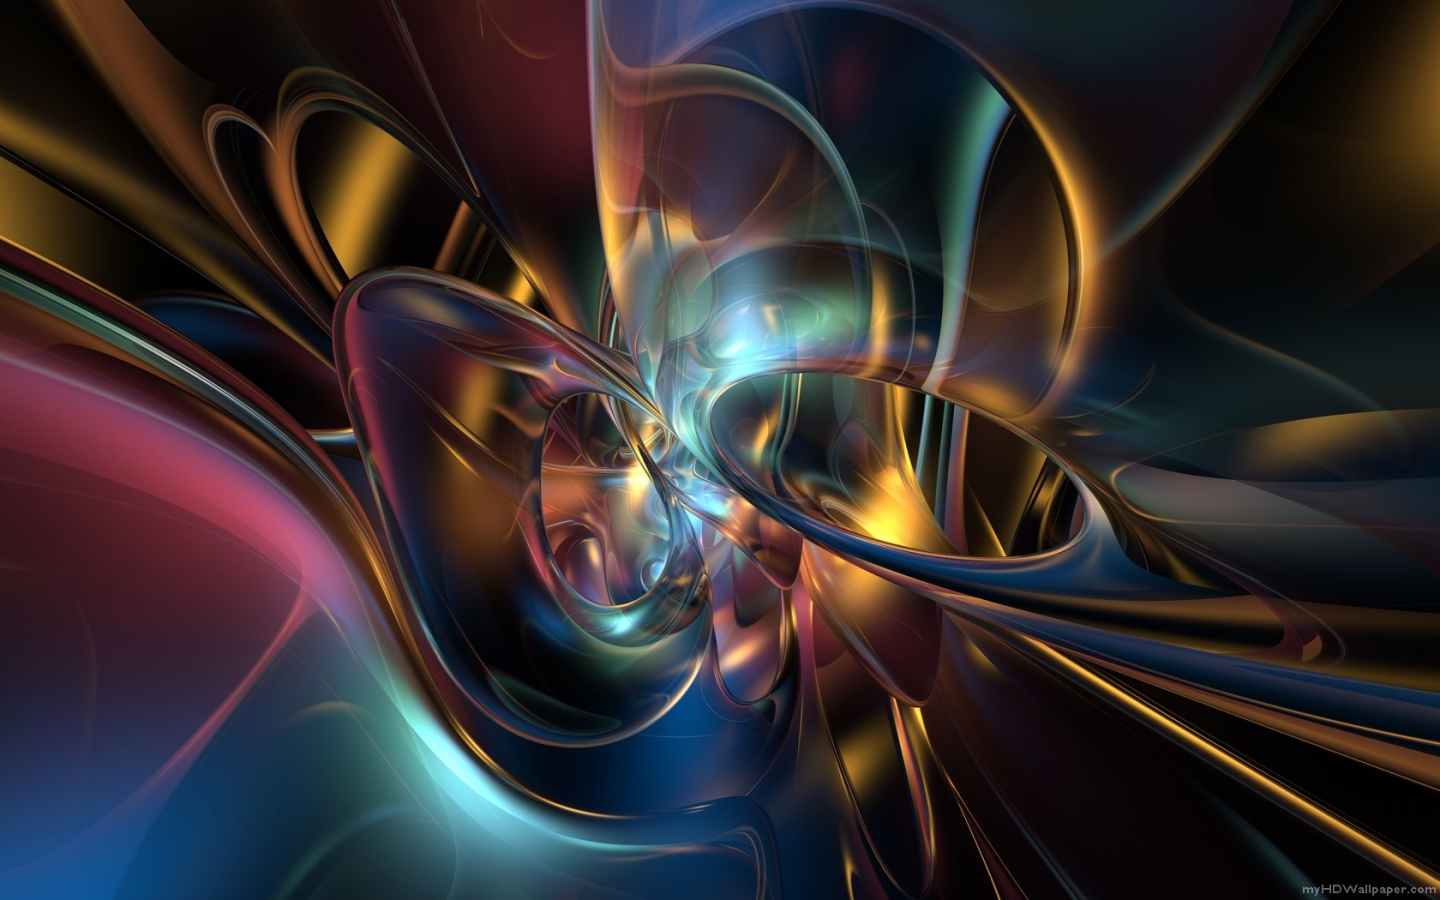 Wallpaper Backgrounds Abstract Art Wallpapers 1440x900